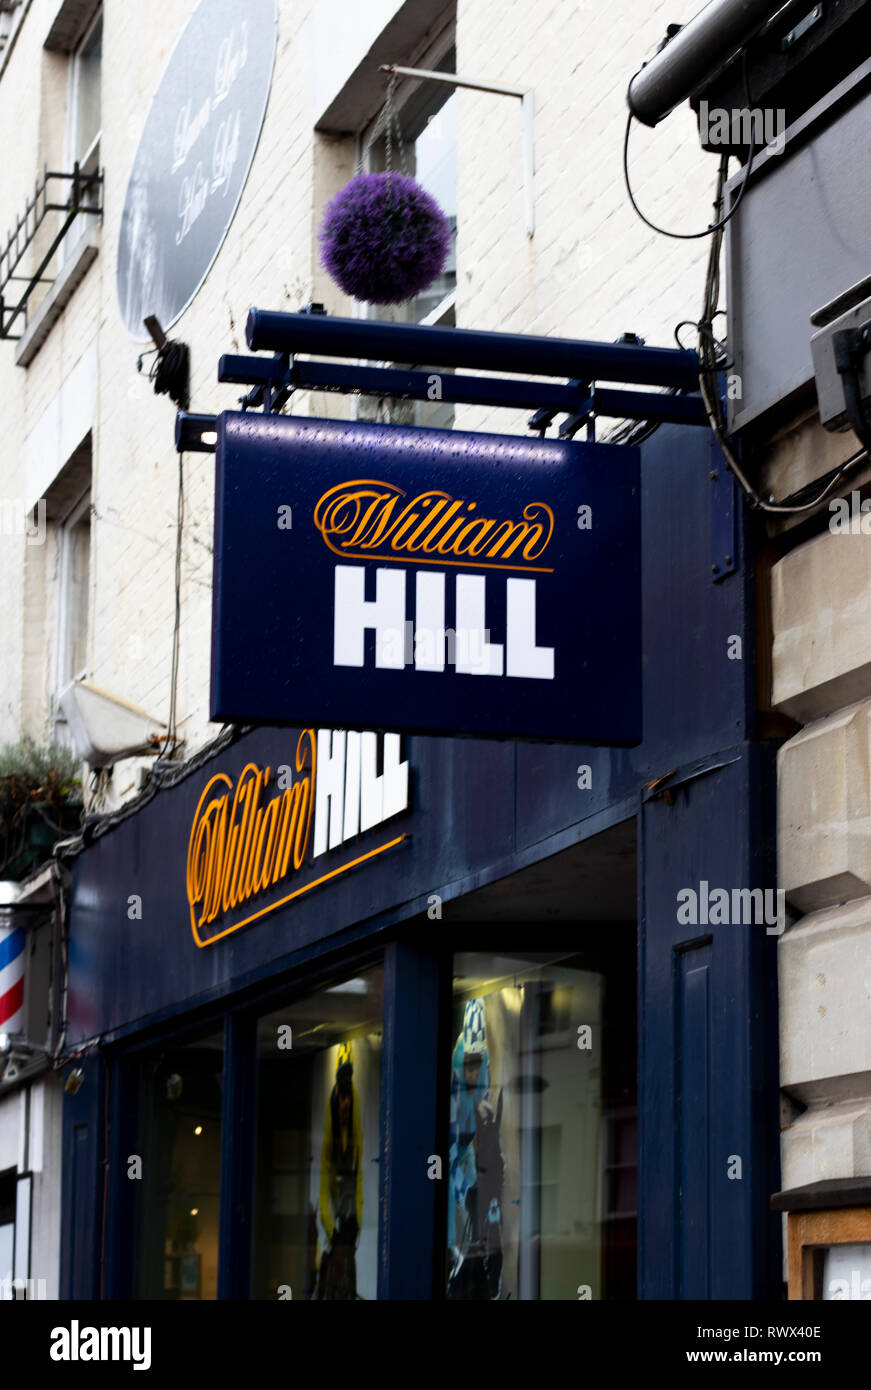 William Hill bookmakers sign, company founded by William Hill in 1934 at a time when gambling was illegal in Britain - Stock Image